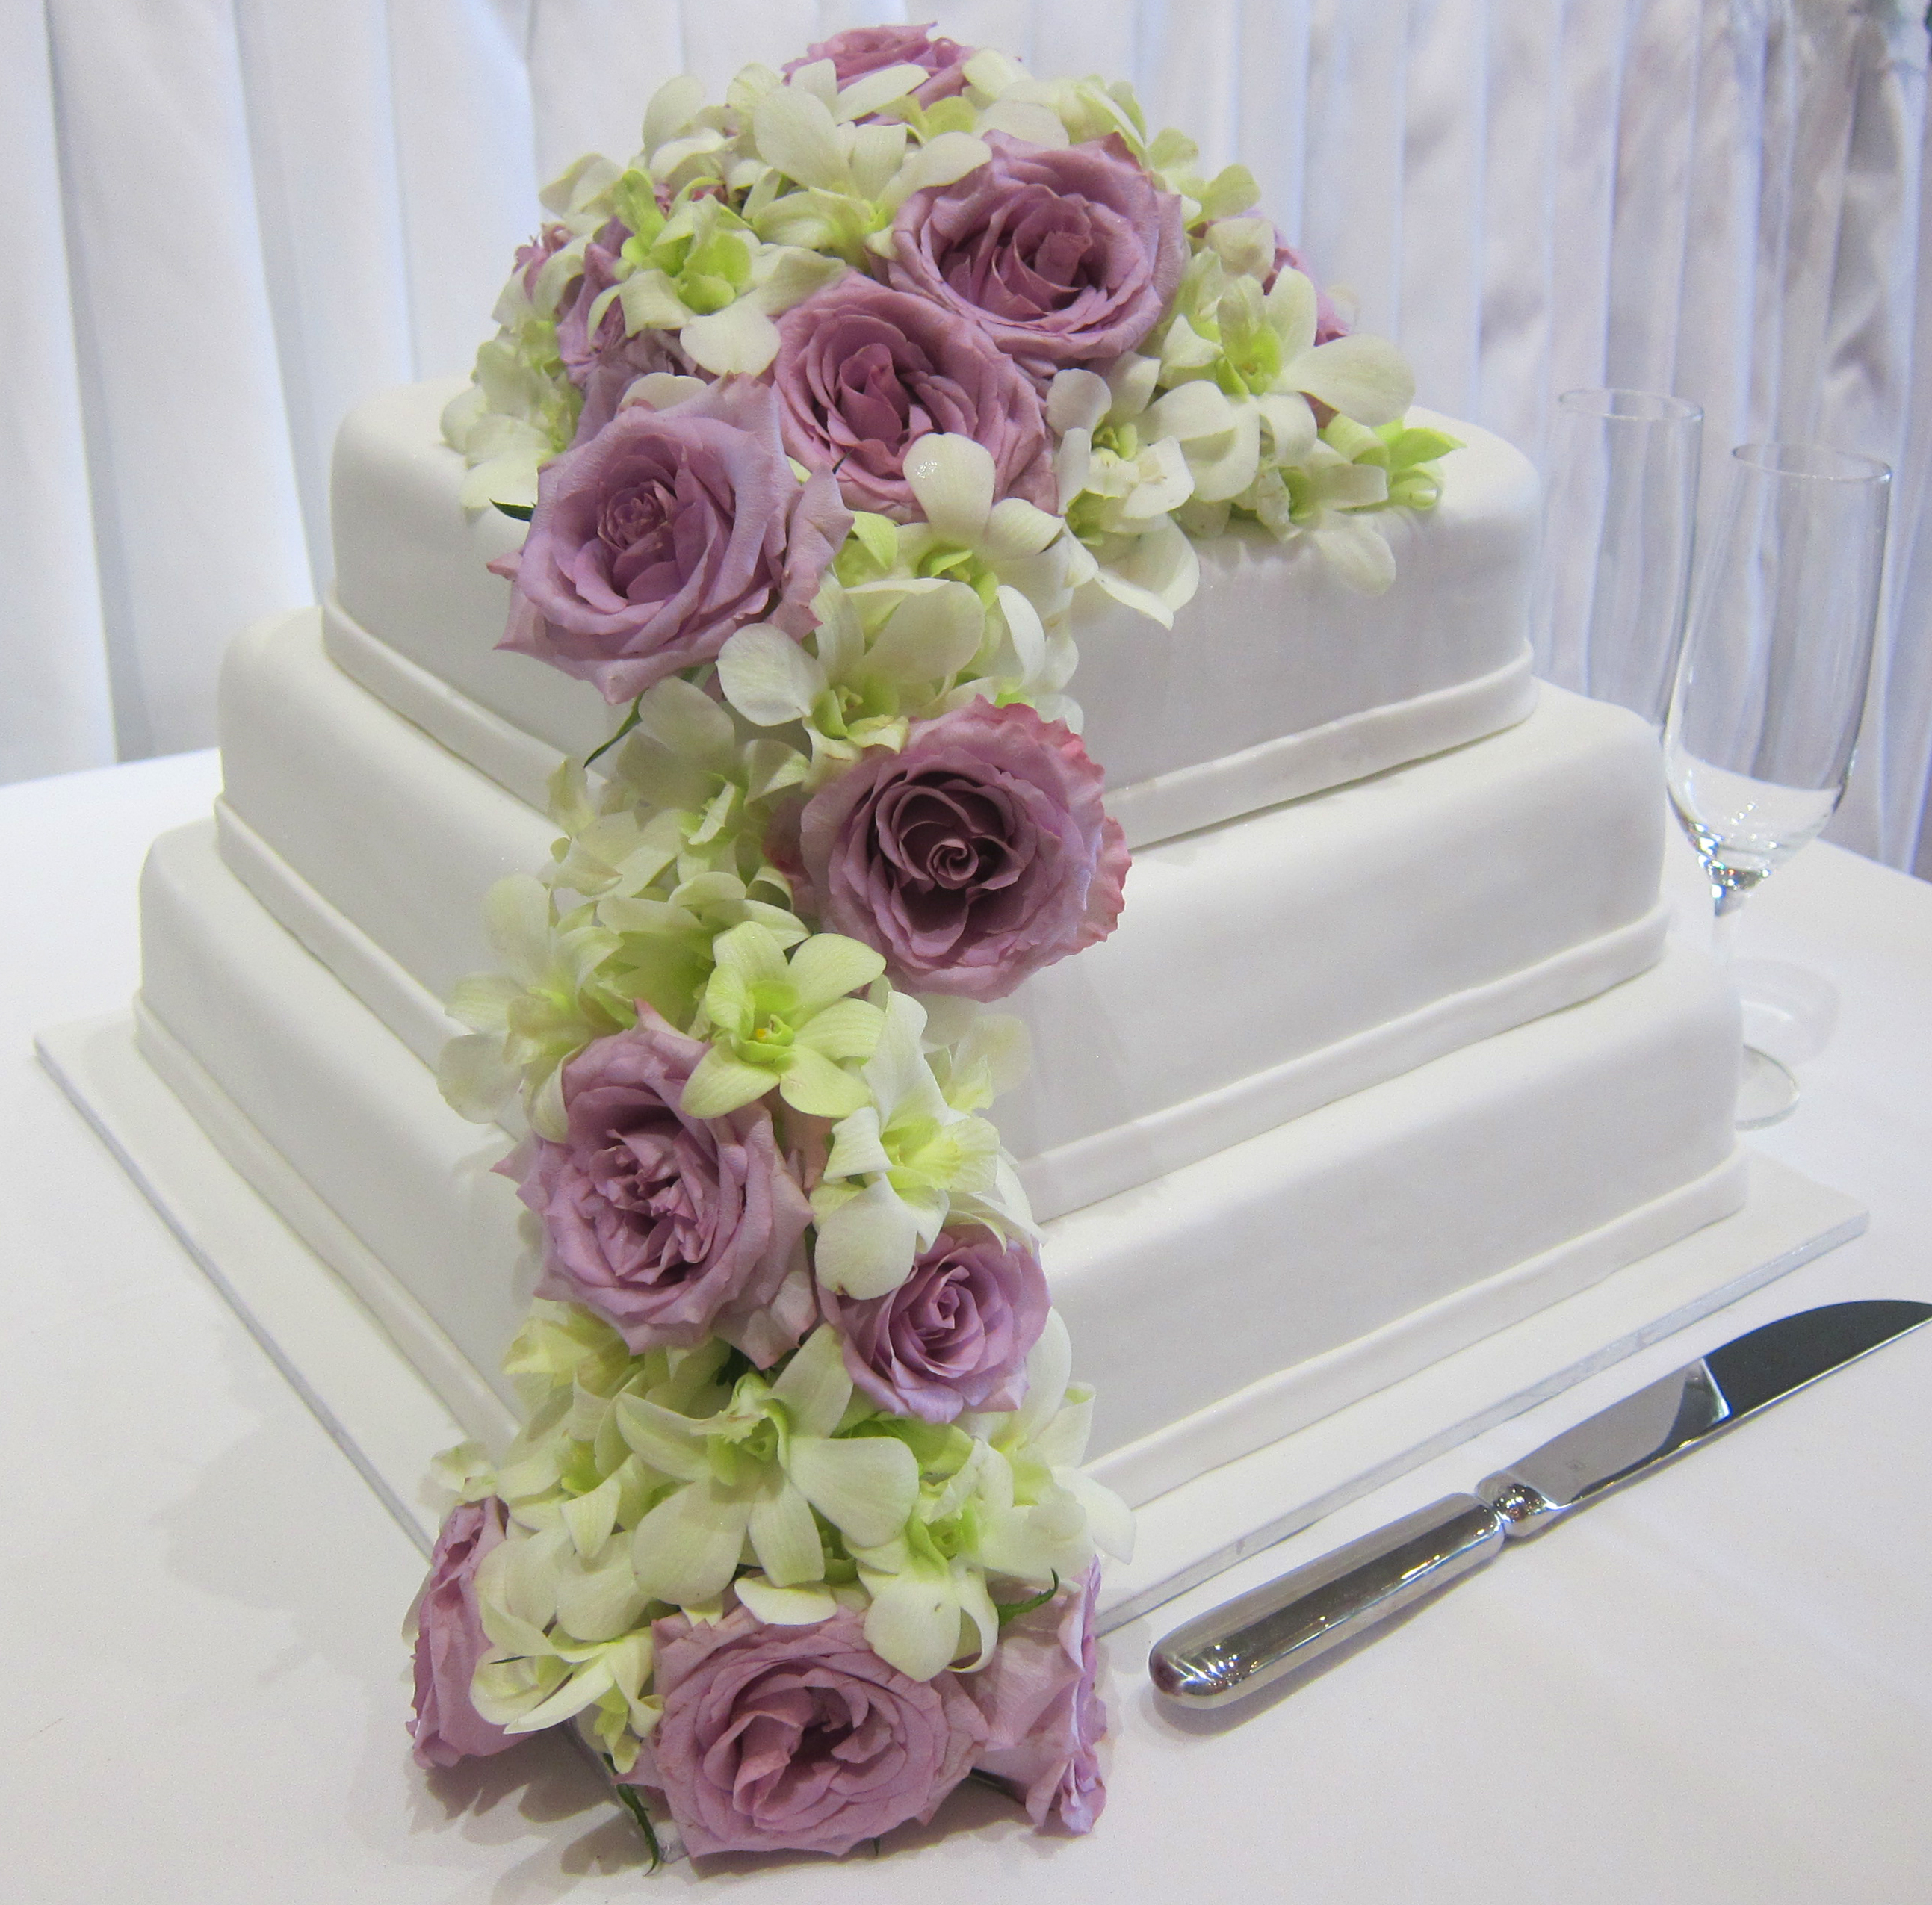 fresh flowers on wedding cakes wedding flowers 2013. Black Bedroom Furniture Sets. Home Design Ideas